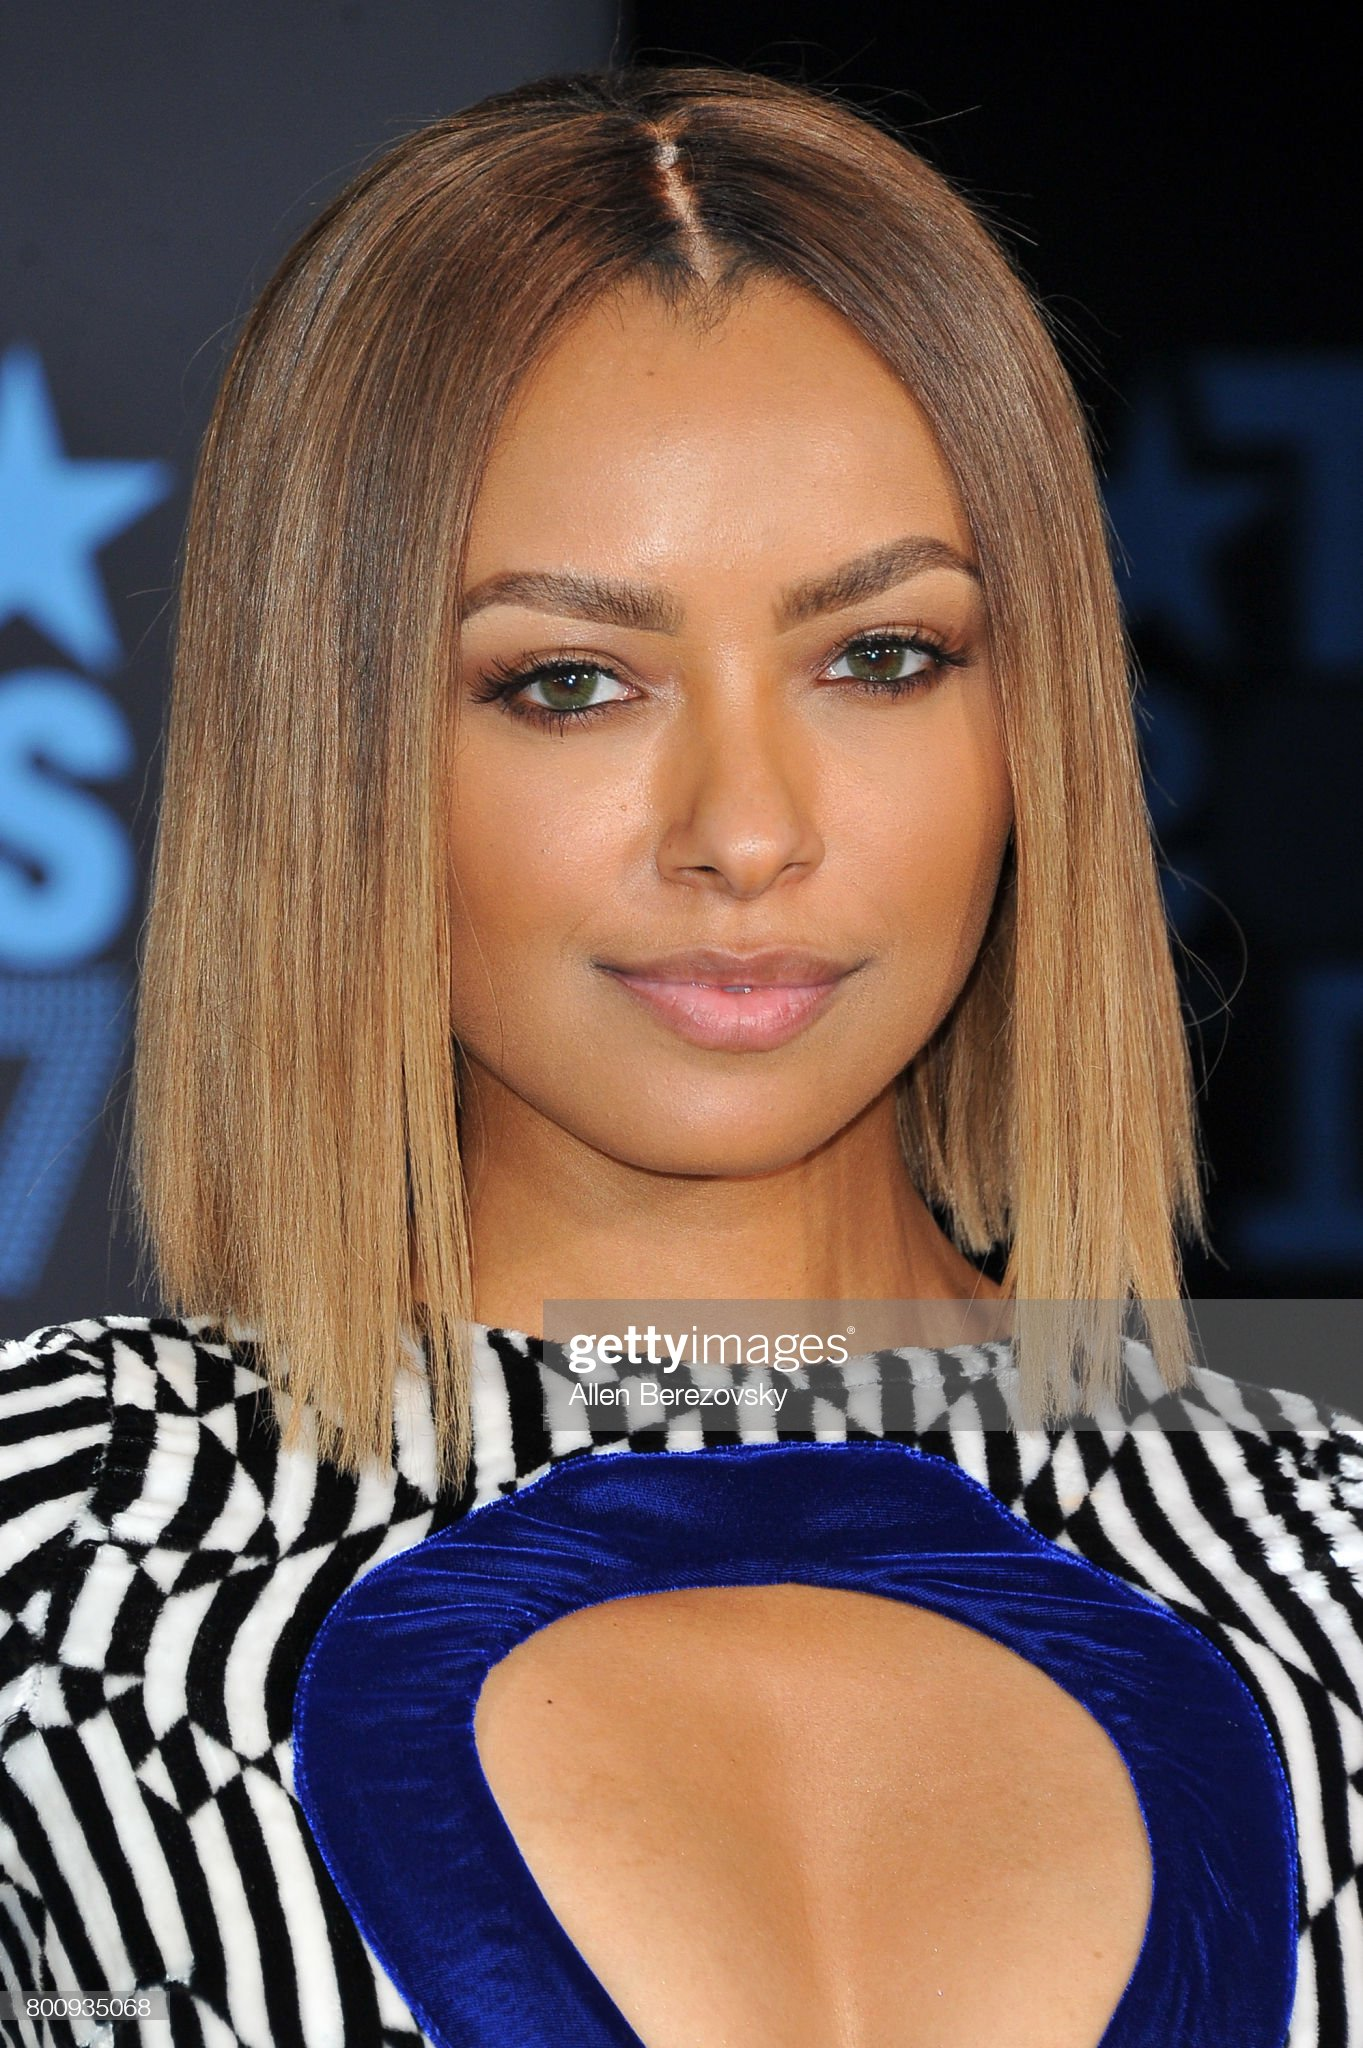 COLOR DE OJOS (clasificación y debate de personas famosas) - Página 11 Actresssinger-kat-graham-arrives-at-the-2017-bet-awards-at-microsoft-picture-id800935068?s=2048x2048